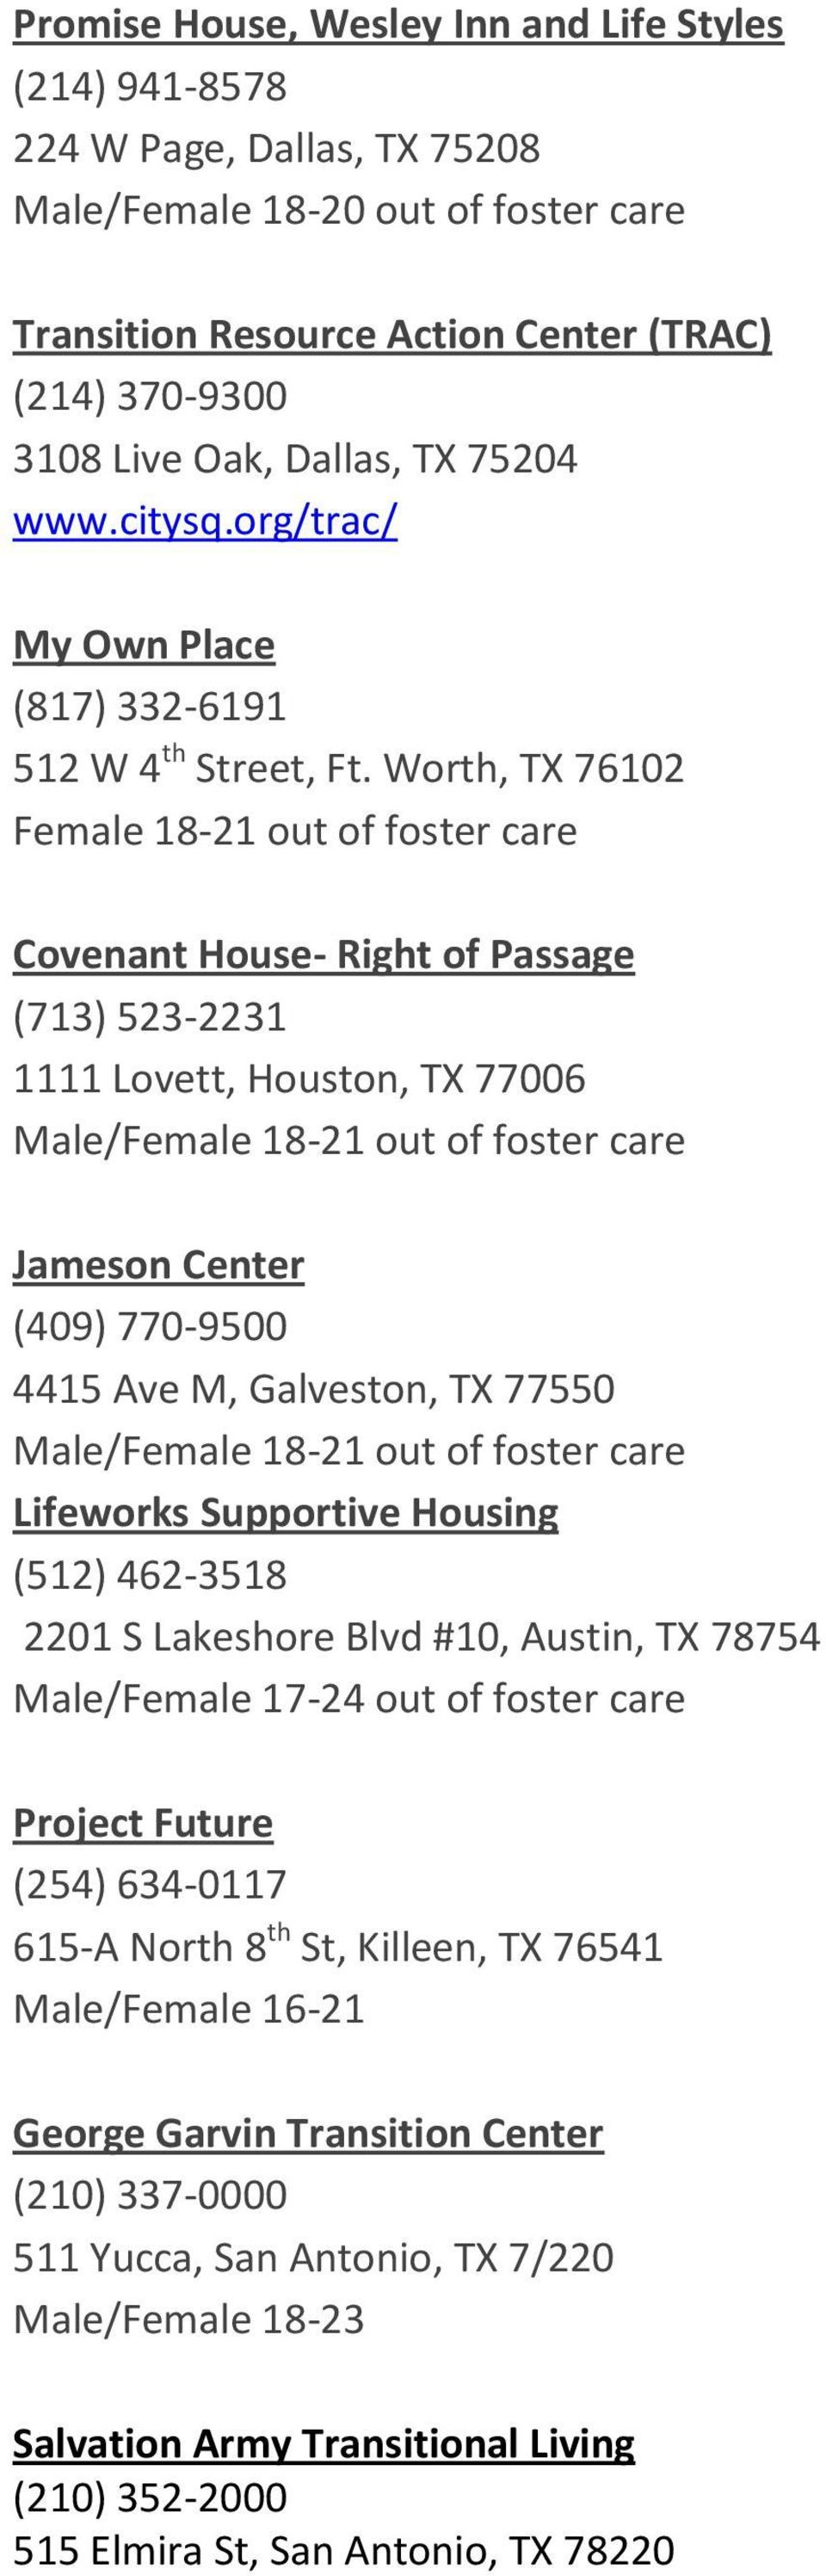 Worth, TX 76102 Female 18-21 out of foster care Covenant House- Right of Passage (713) 523-2231 1111 Lovett, Houston, TX 77006 Male/Female 18-21 out of foster care Jameson Center (409) 770-9500 4415